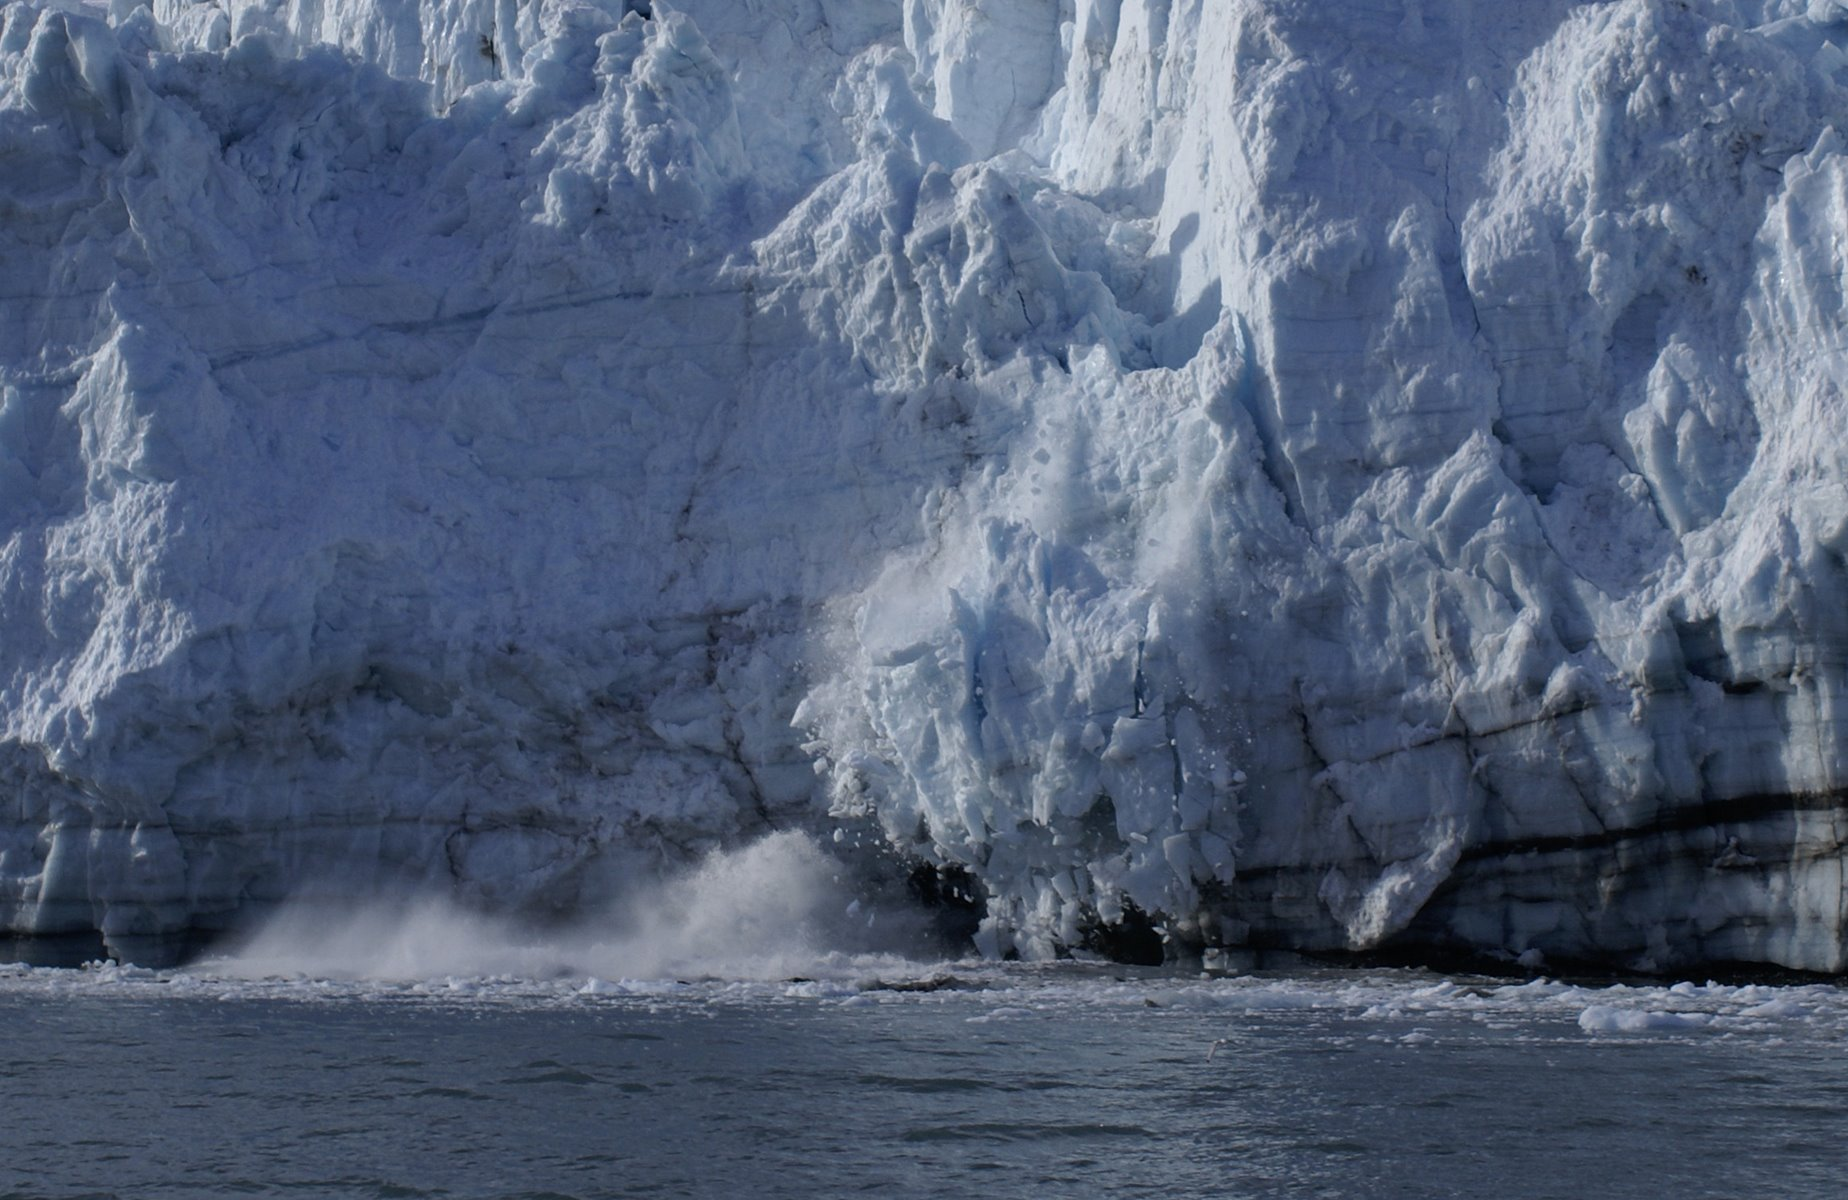 Calving glacier sequence, photo 1